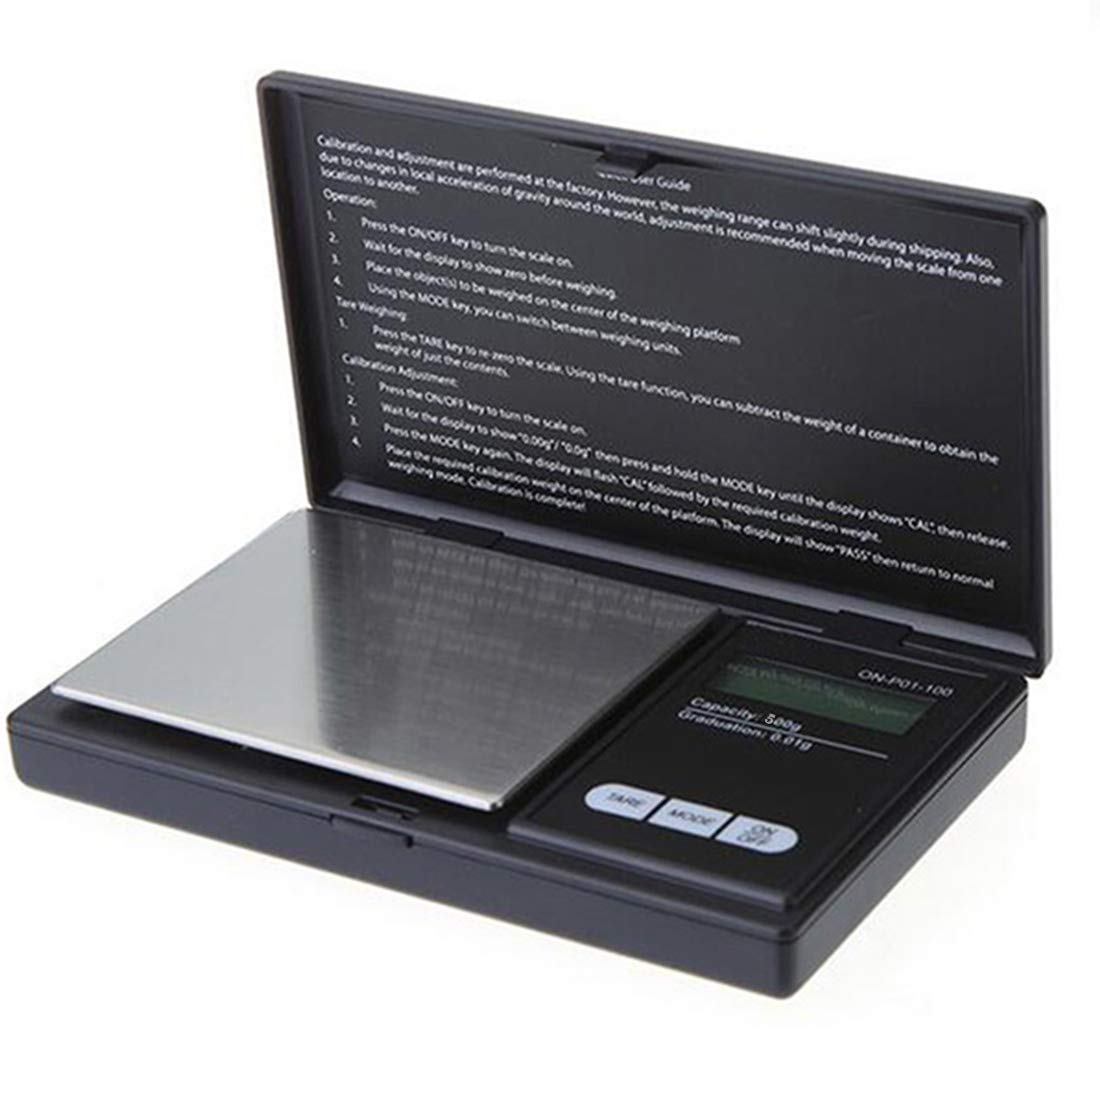 200g/0.01g Mini Digital Pocket Precision Scale Jewelry Scale Electronic LCD Scale Clamshell NoyoKere